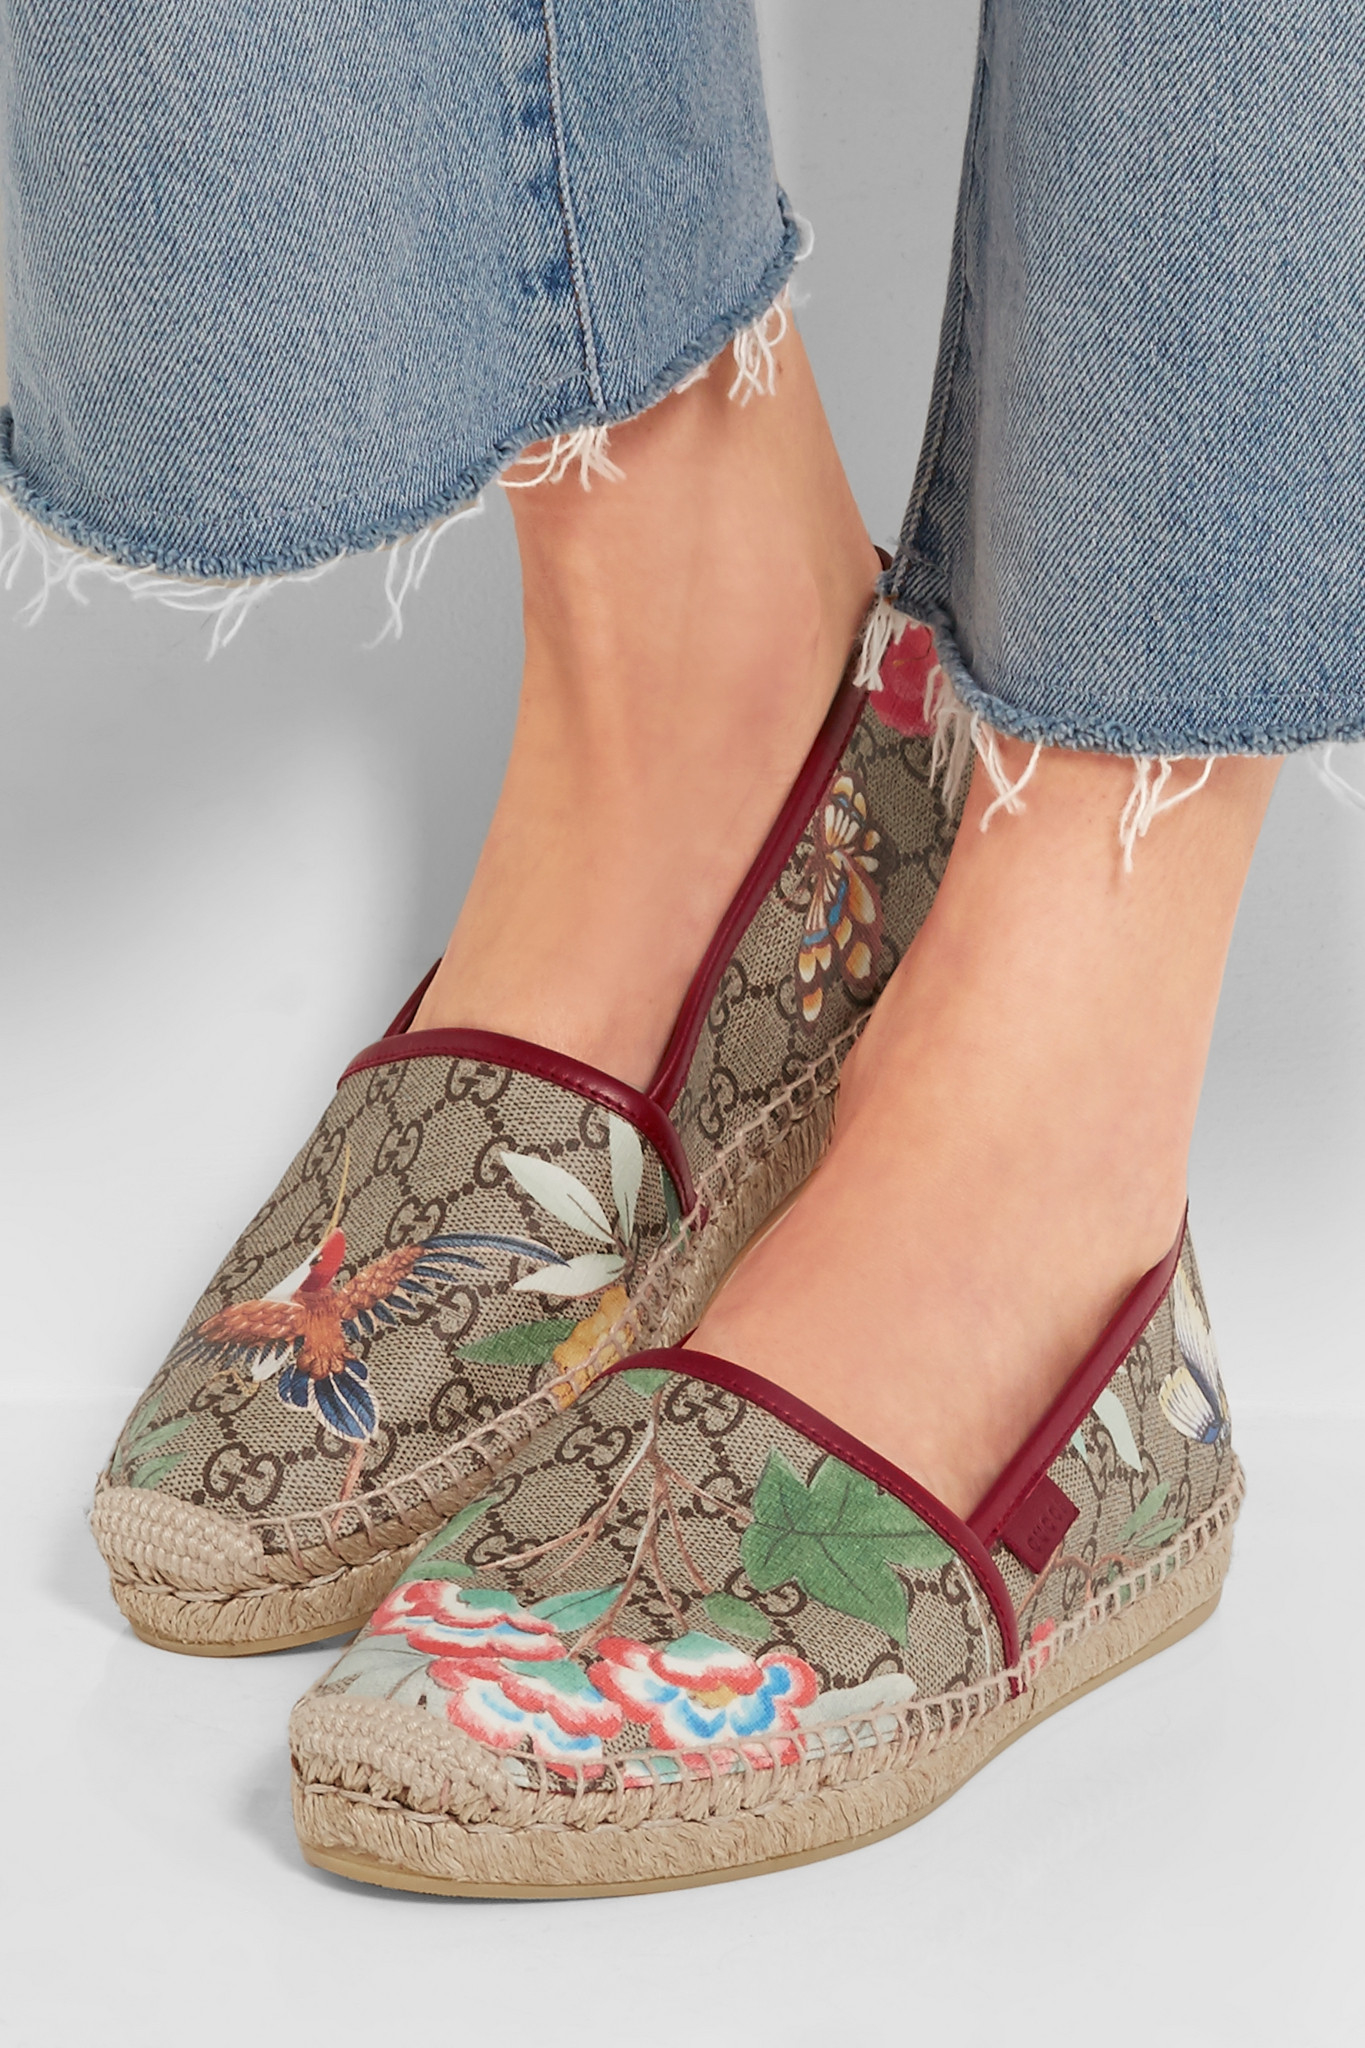 5b876598548 Gucci Tian Leather-trimmed Printed Coated Canvas Espadrilles in Gray ...